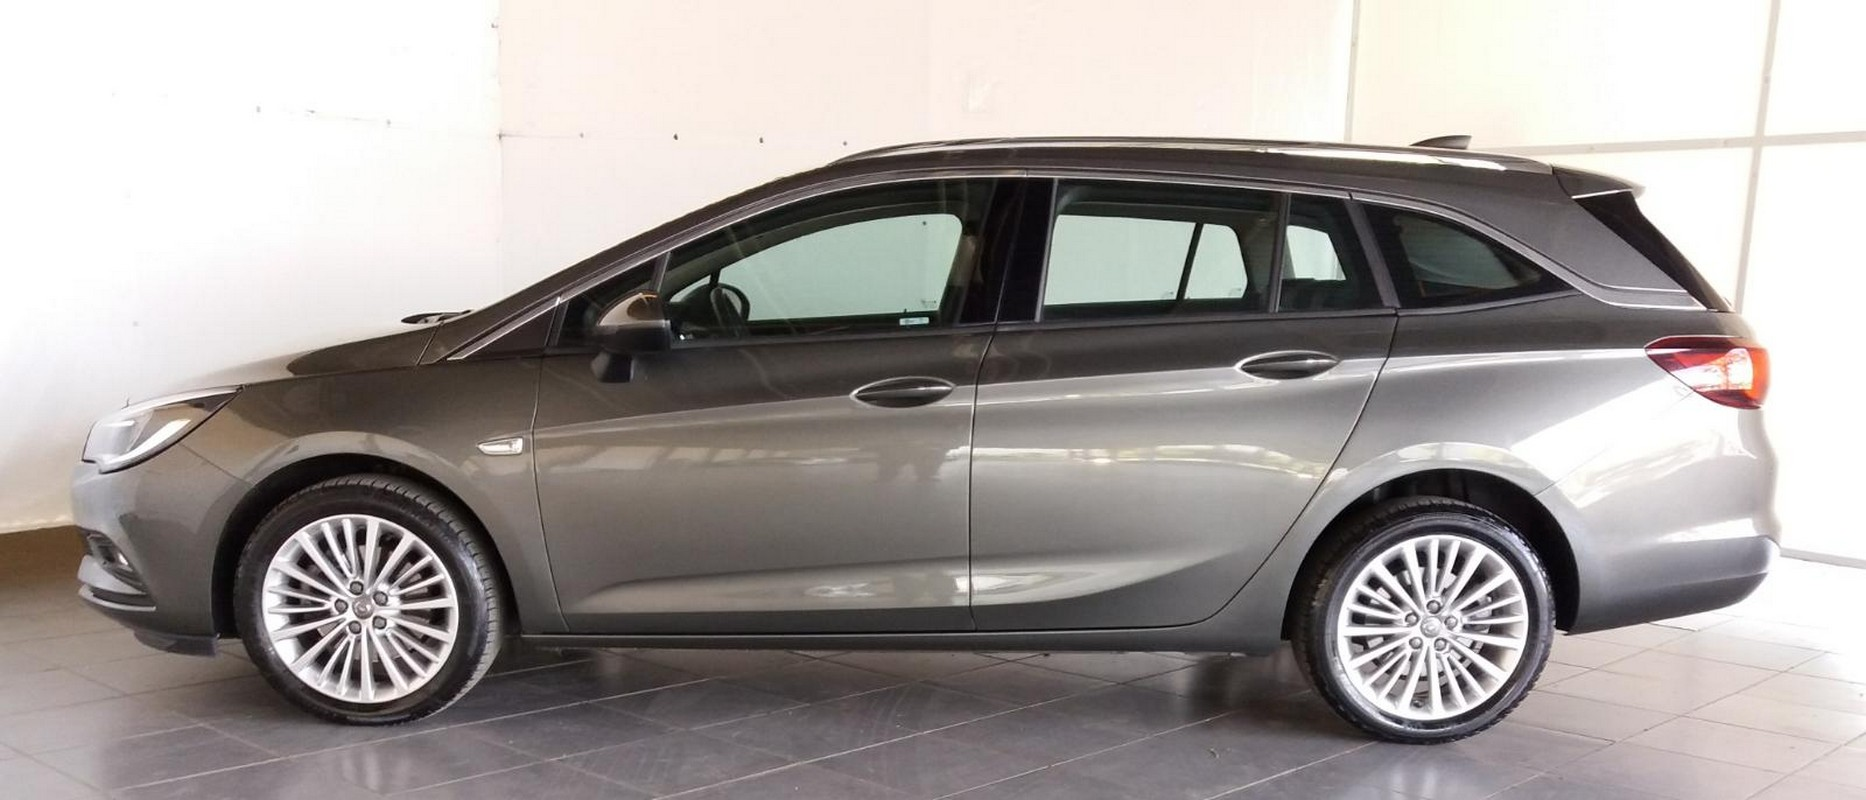 Opel Astra ST 1.6 CDTi 136CV aut. Innovation Sports Tourer 2015 0